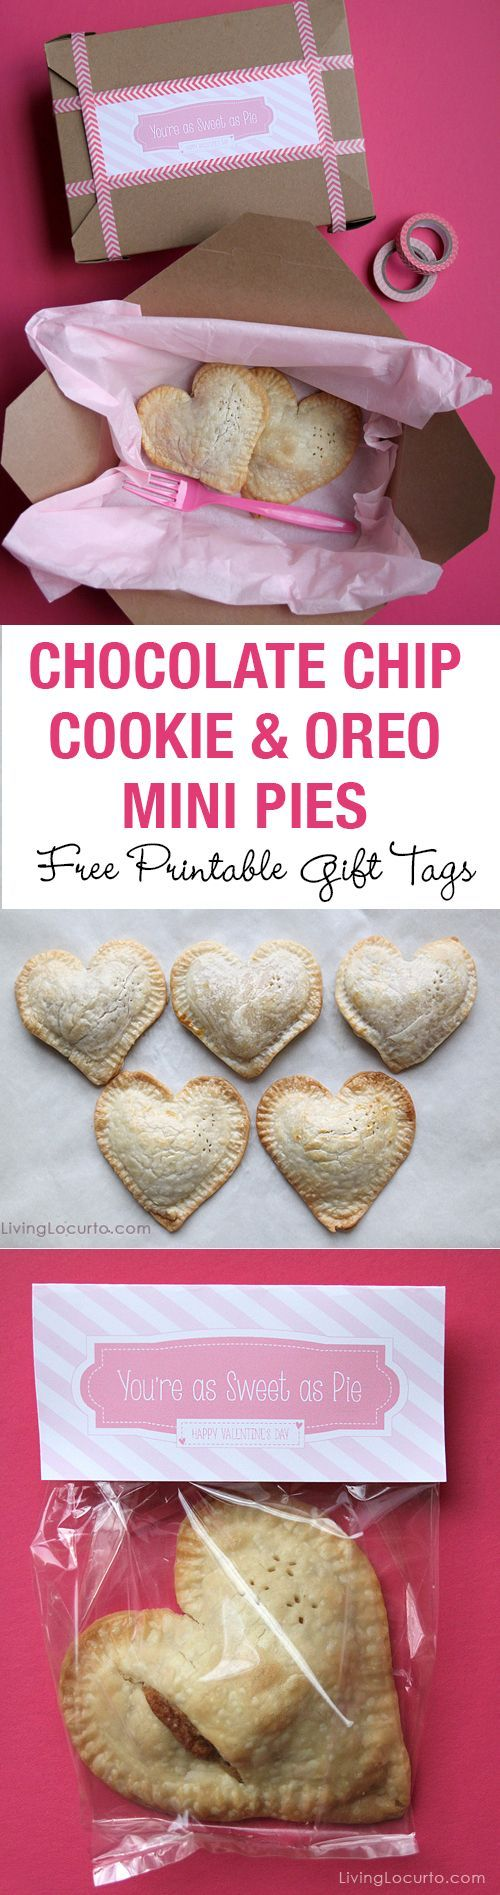 These Chocolate Chip Cookie and Oreo Cookie Mini Heart Pies are an adorable treat! Make someone's day by baking this recipe and packaging with a Free Printable gift tag for Valentine's Day.